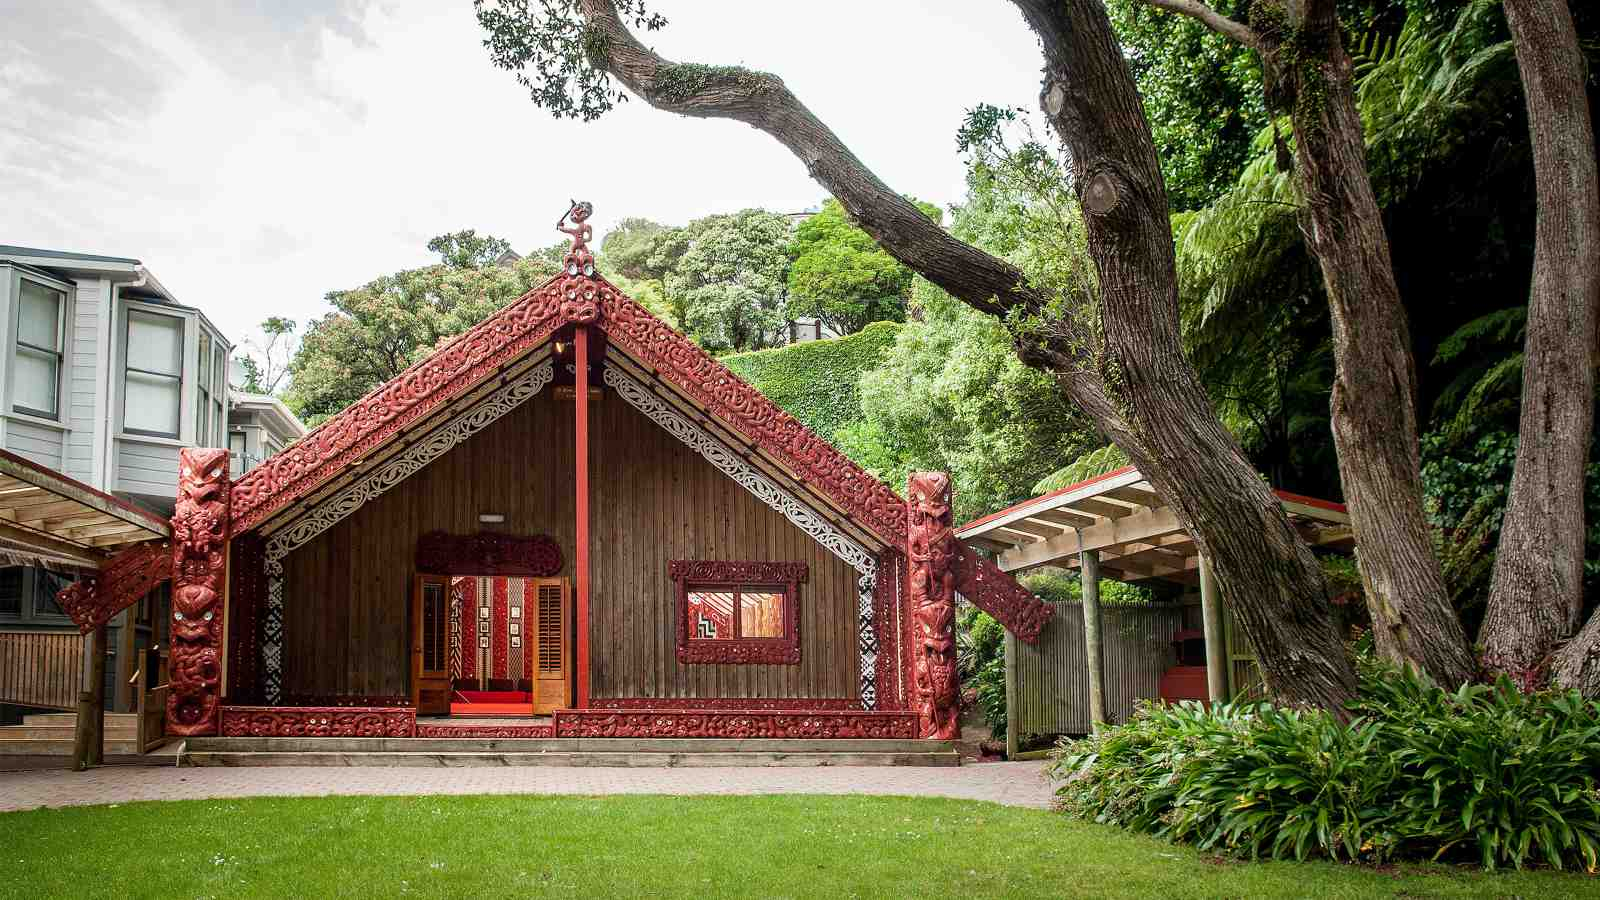 The entrance to the Marae taken from the outside across a green lawn.